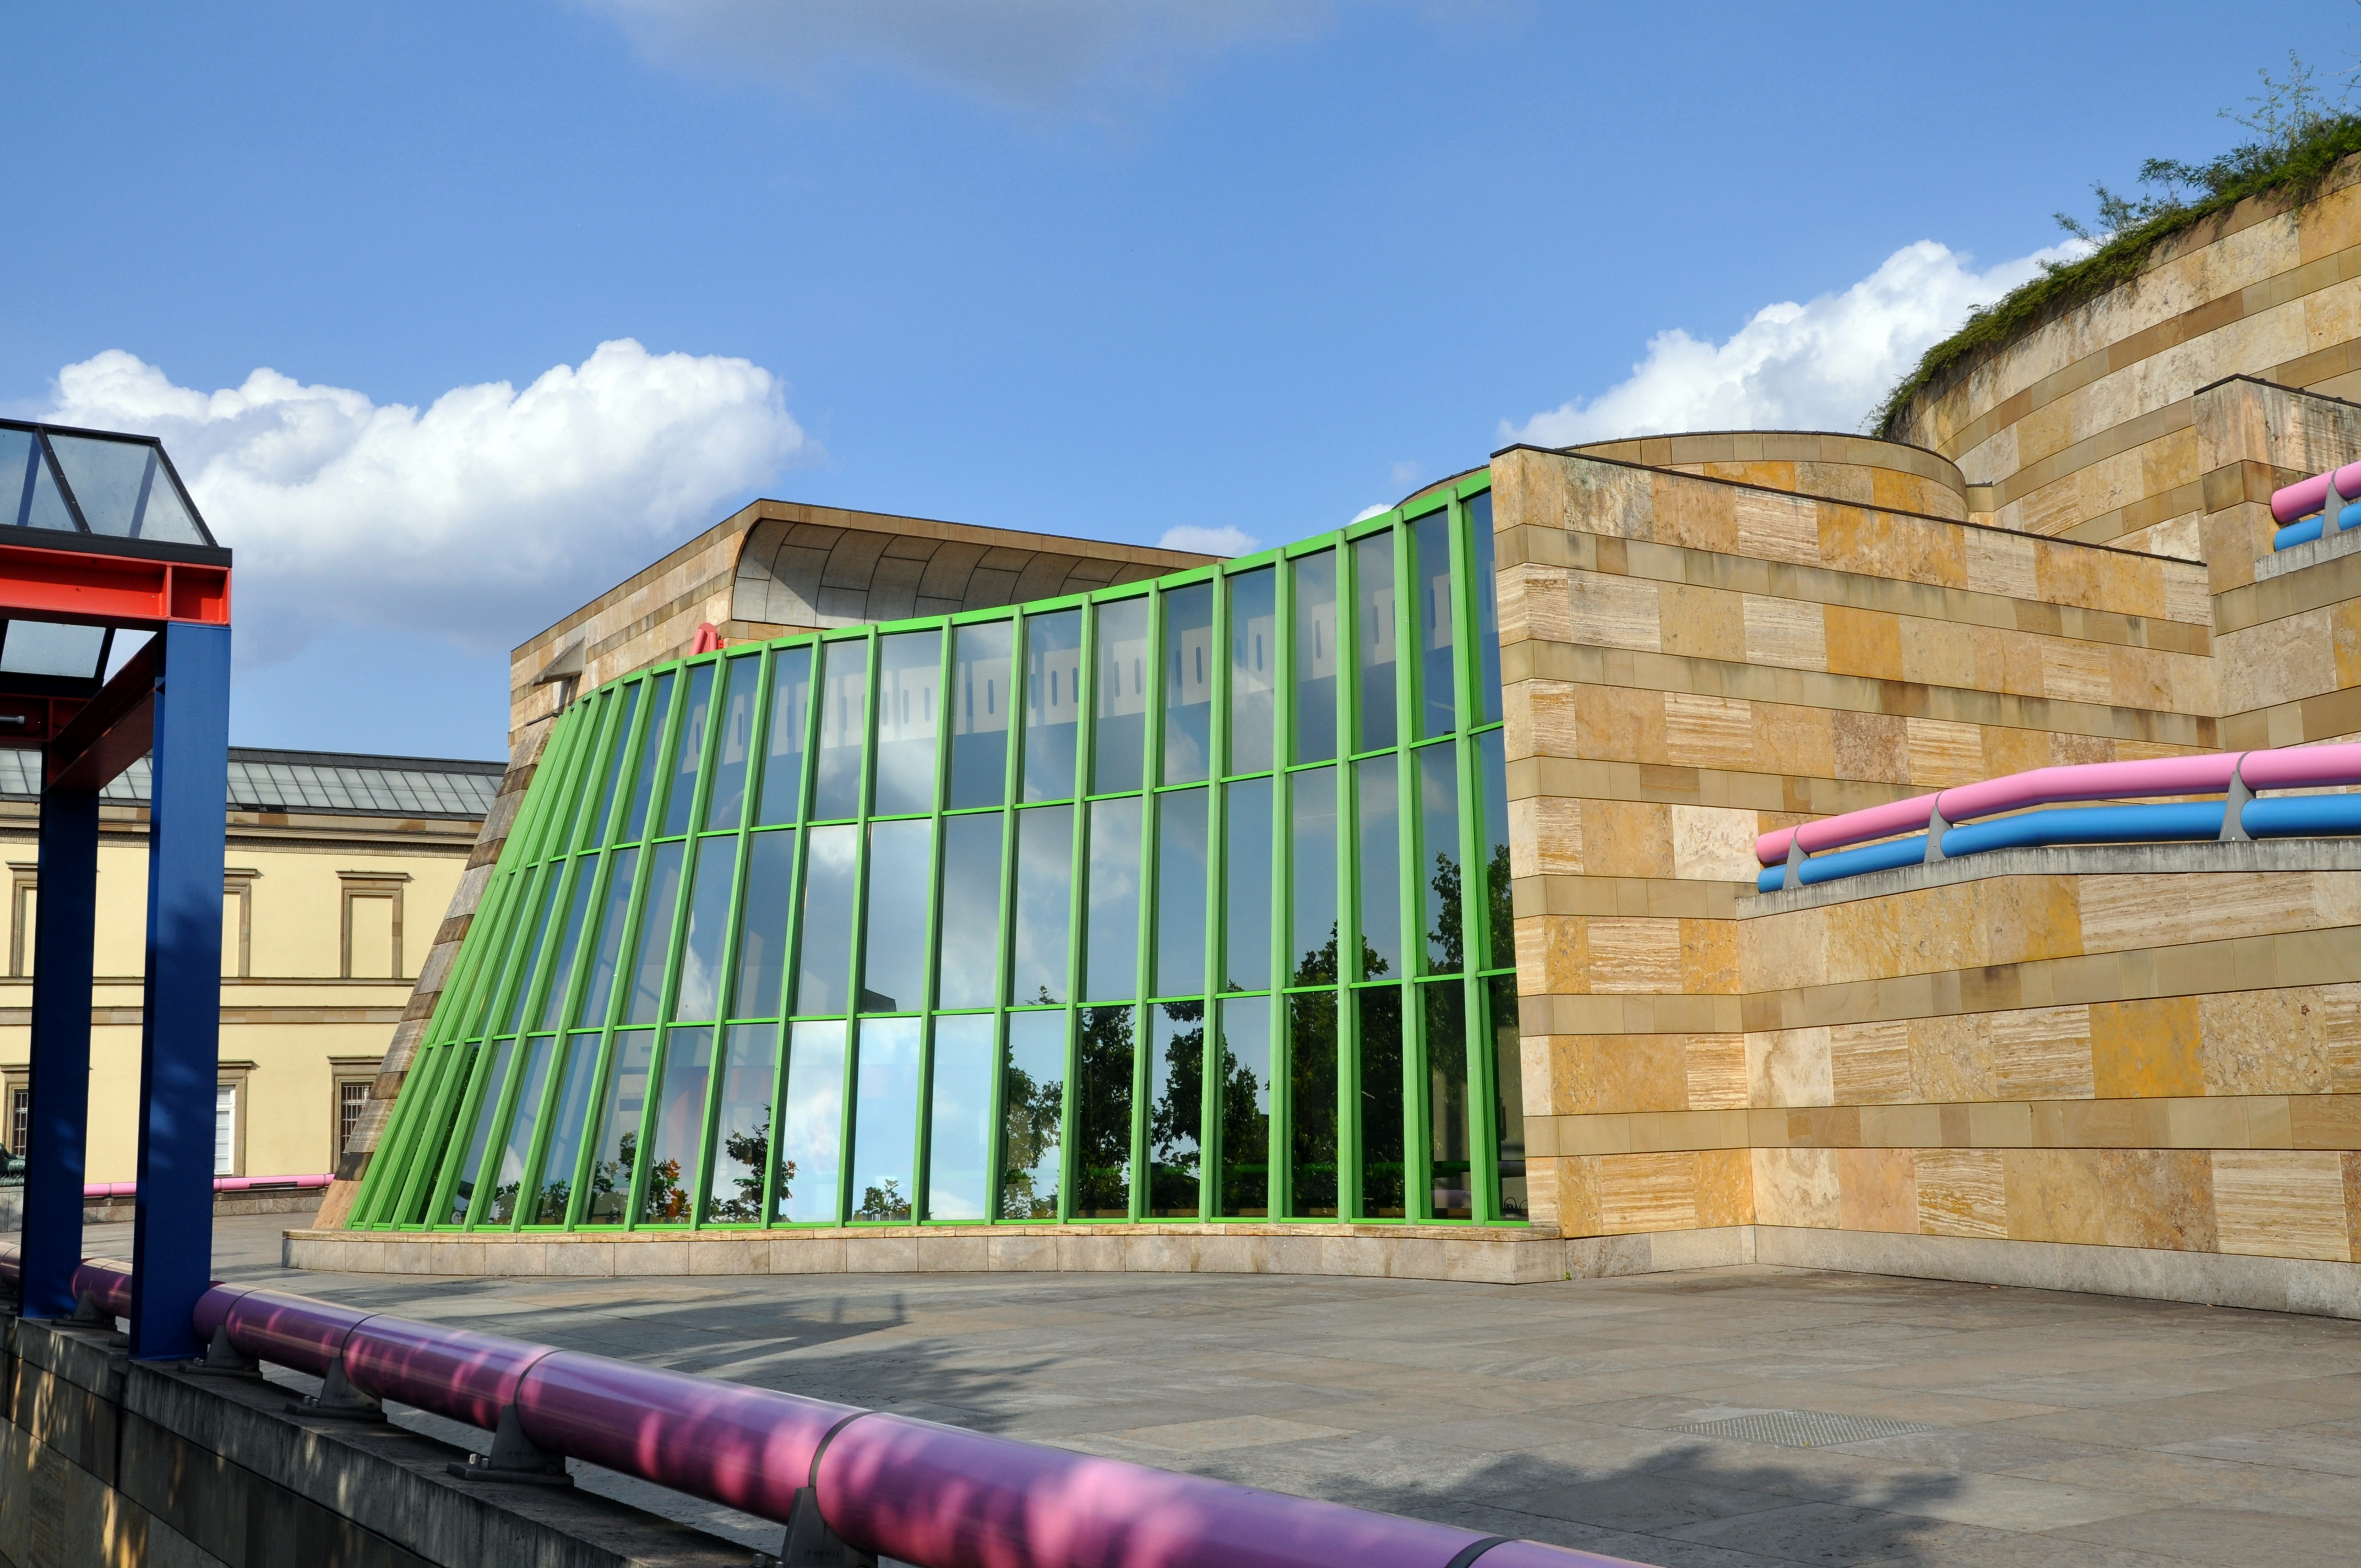 neue staatsgalerie The staatsgalerie stuttgart (state gallery) is an art museum in stuttgart, germany, it opened in 1843in 1984, the opening of the neue staatsgalerie (new state gallery) designed by james stirling transformed the once provincial gallery into one of europe's leading museums.